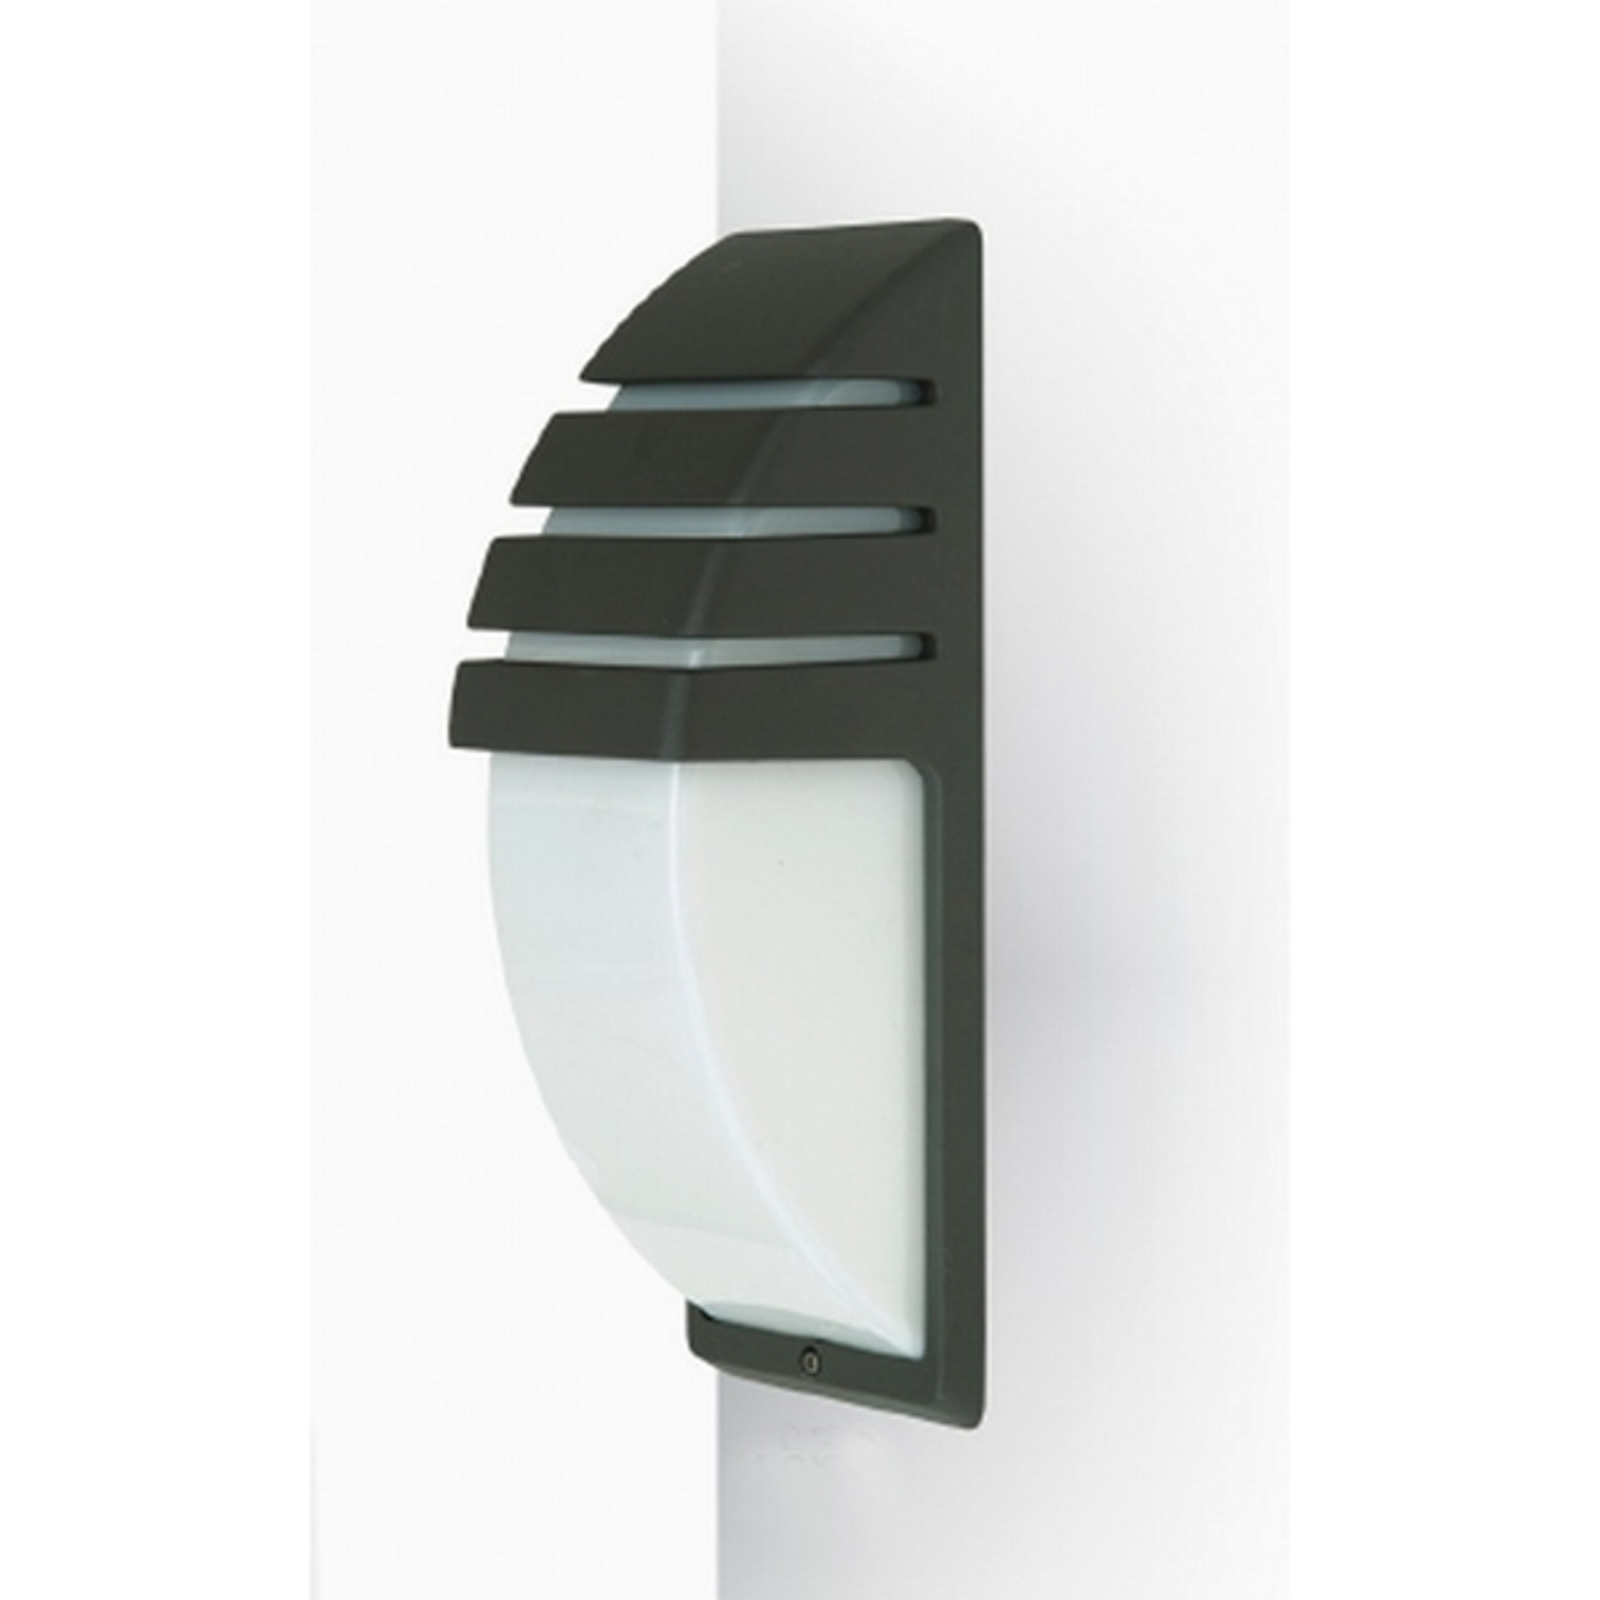 Decorative City ESL designer exterior wall light_3006034_1